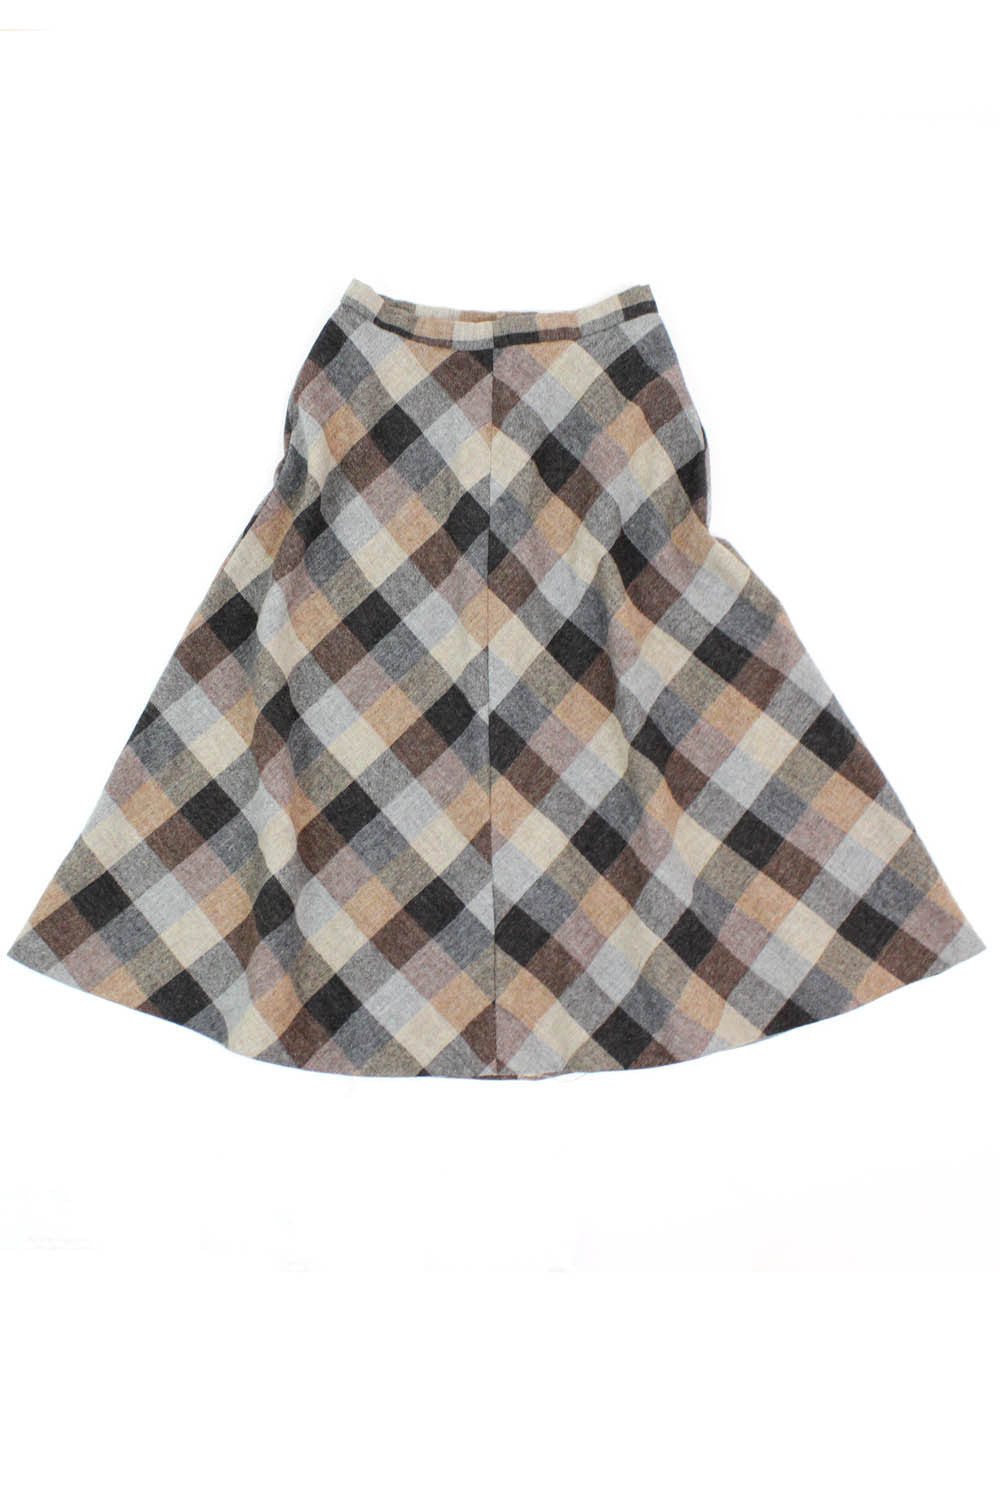 Toasty Plaid A-line Skirt S